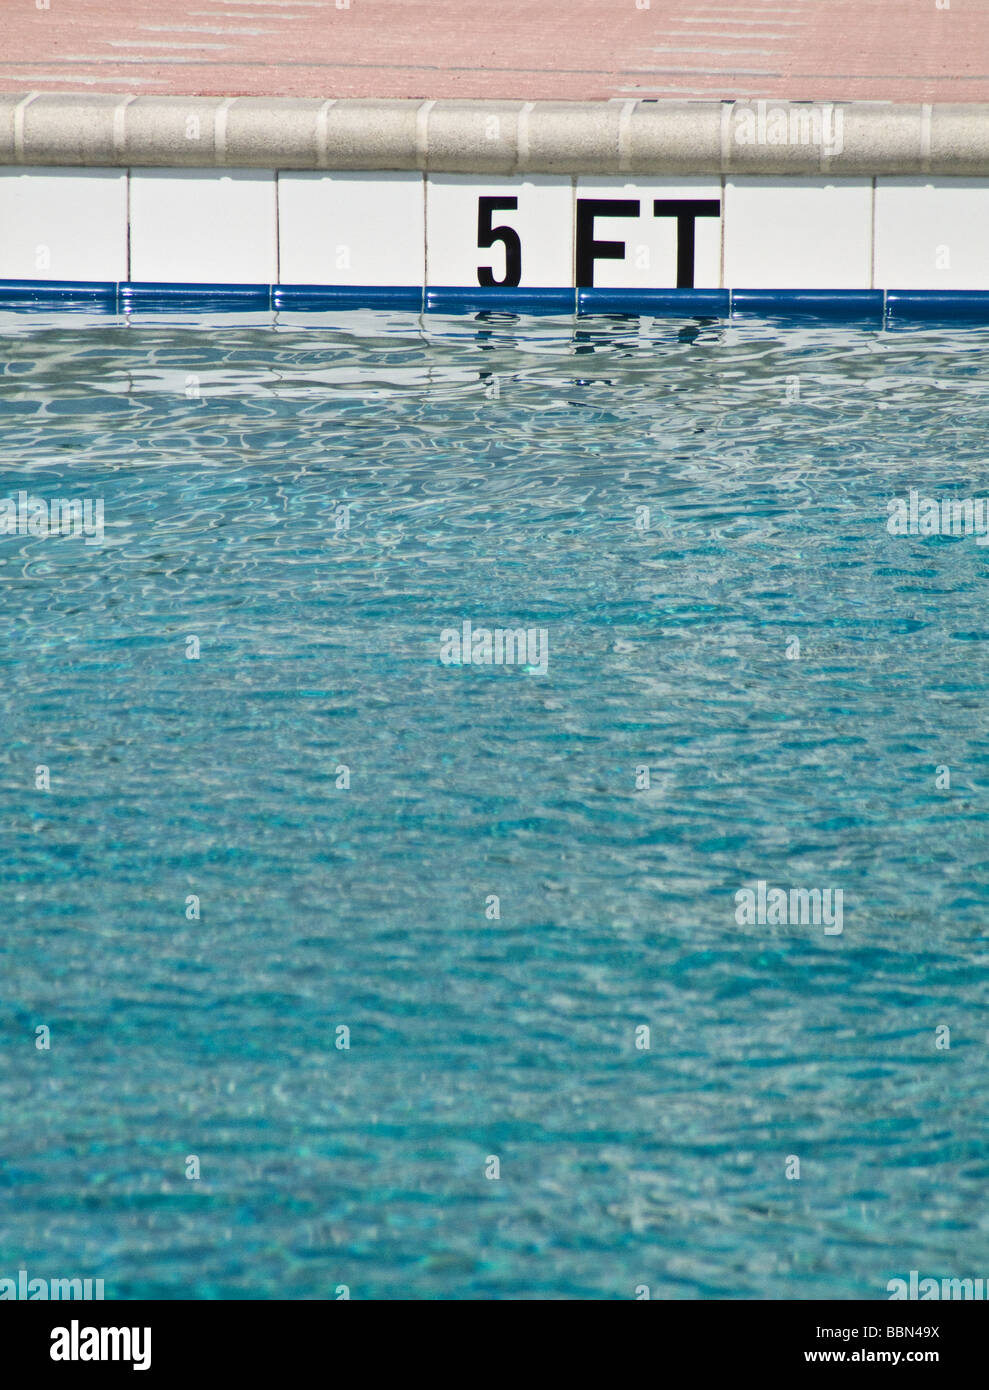 depth markings for pool - Stock Image